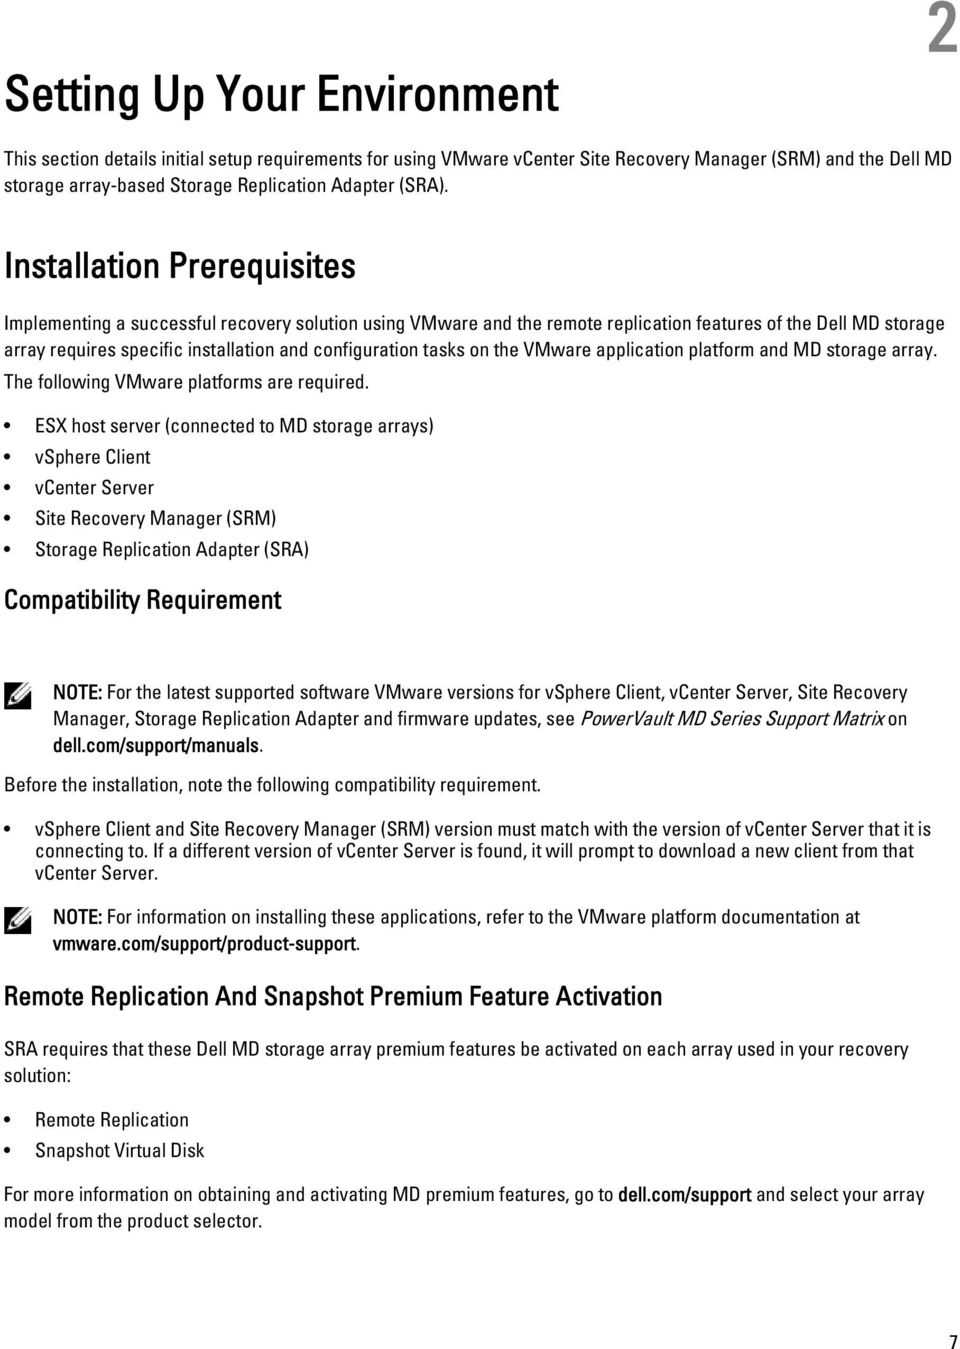 Installation Prerequisites Implementing a successful recovery solution using VMware and the remote replication features of the Dell MD storage array requires specific installation and configuration